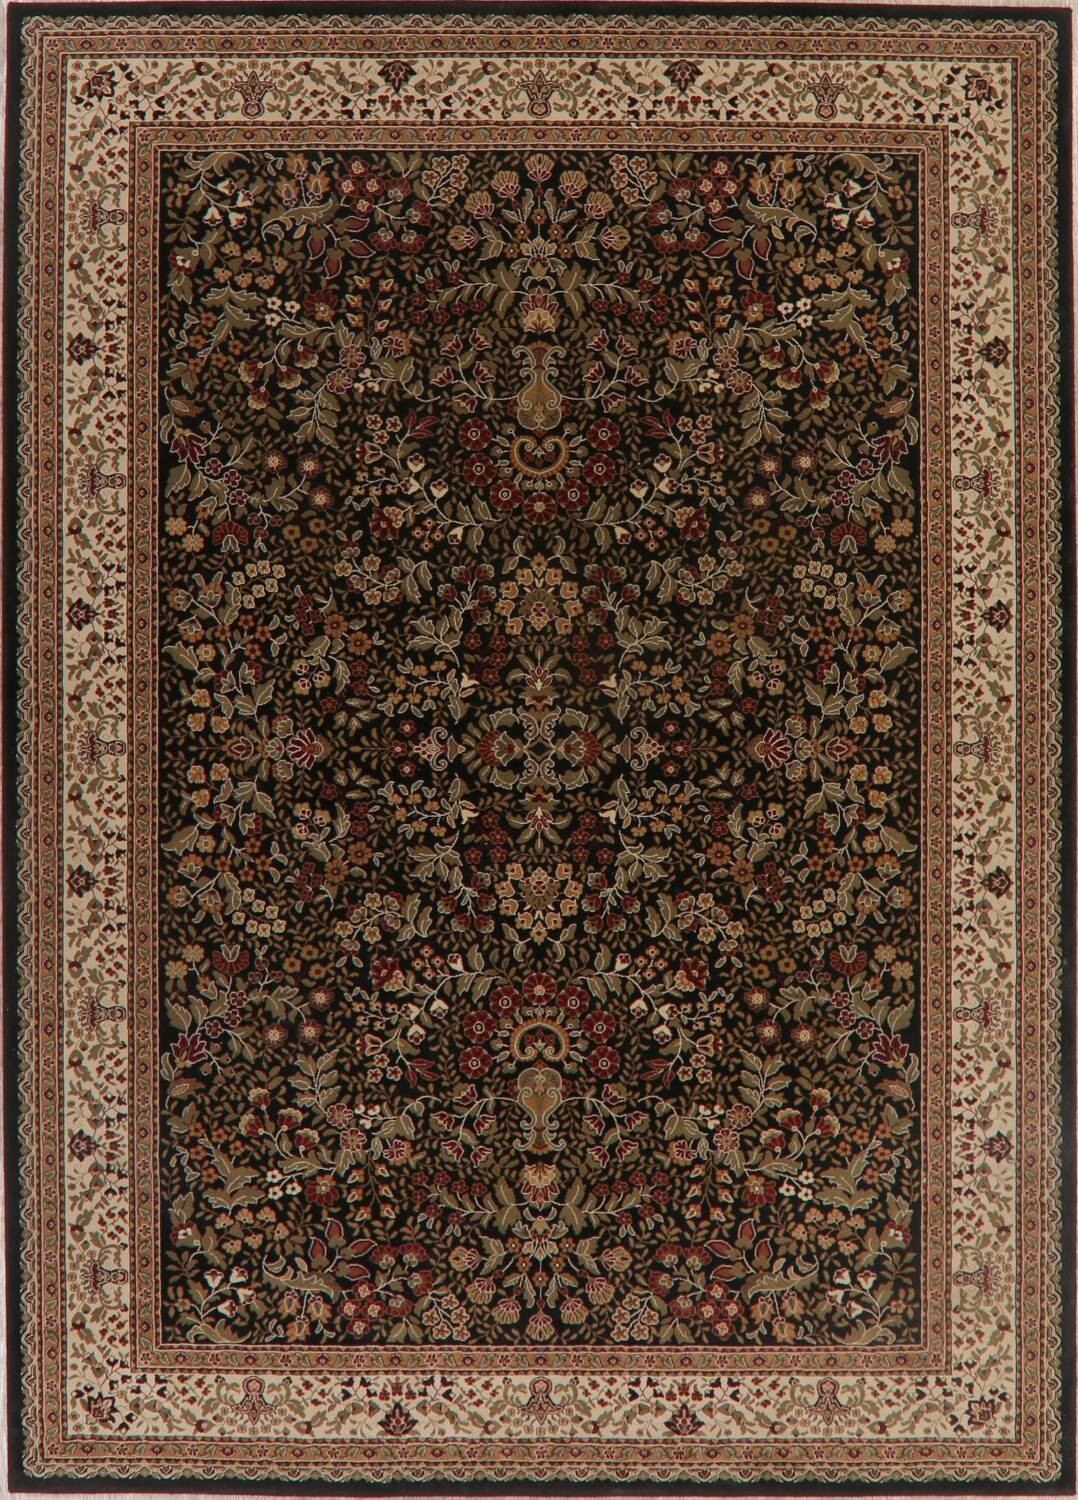 All-Over Floral Agra Turkish Area Rugs image 2